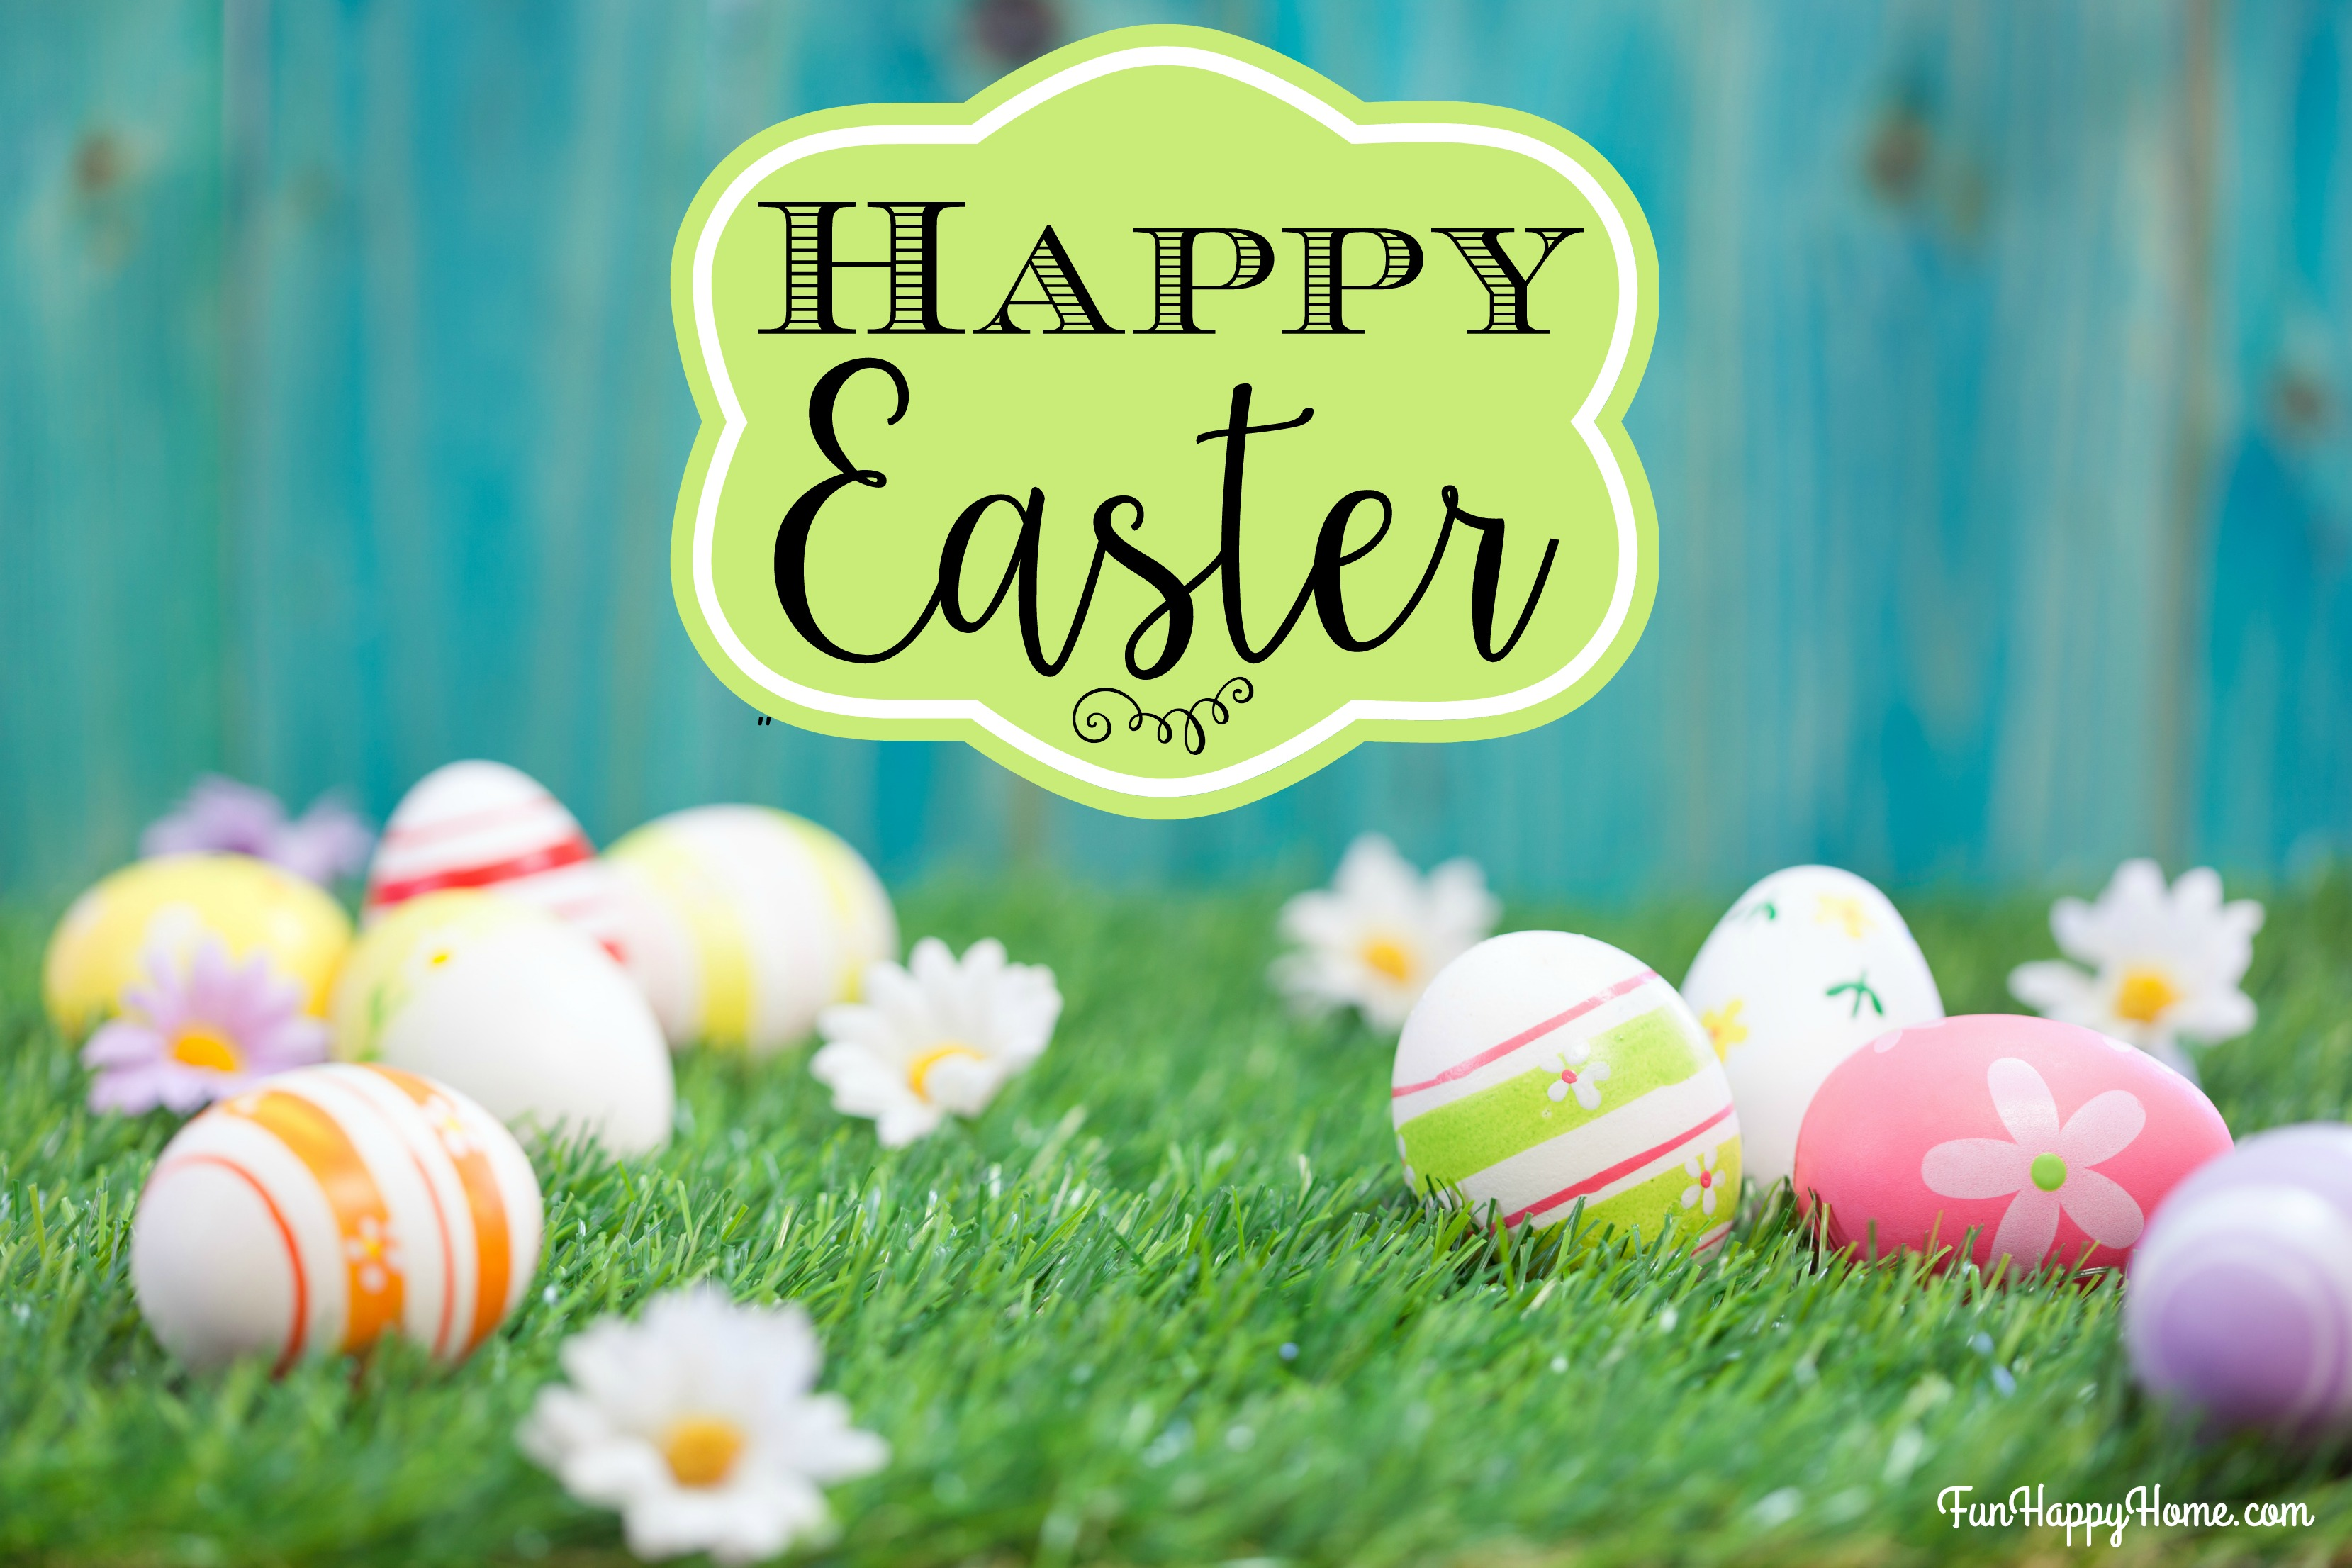 Happy Easter - Fun Happy Home